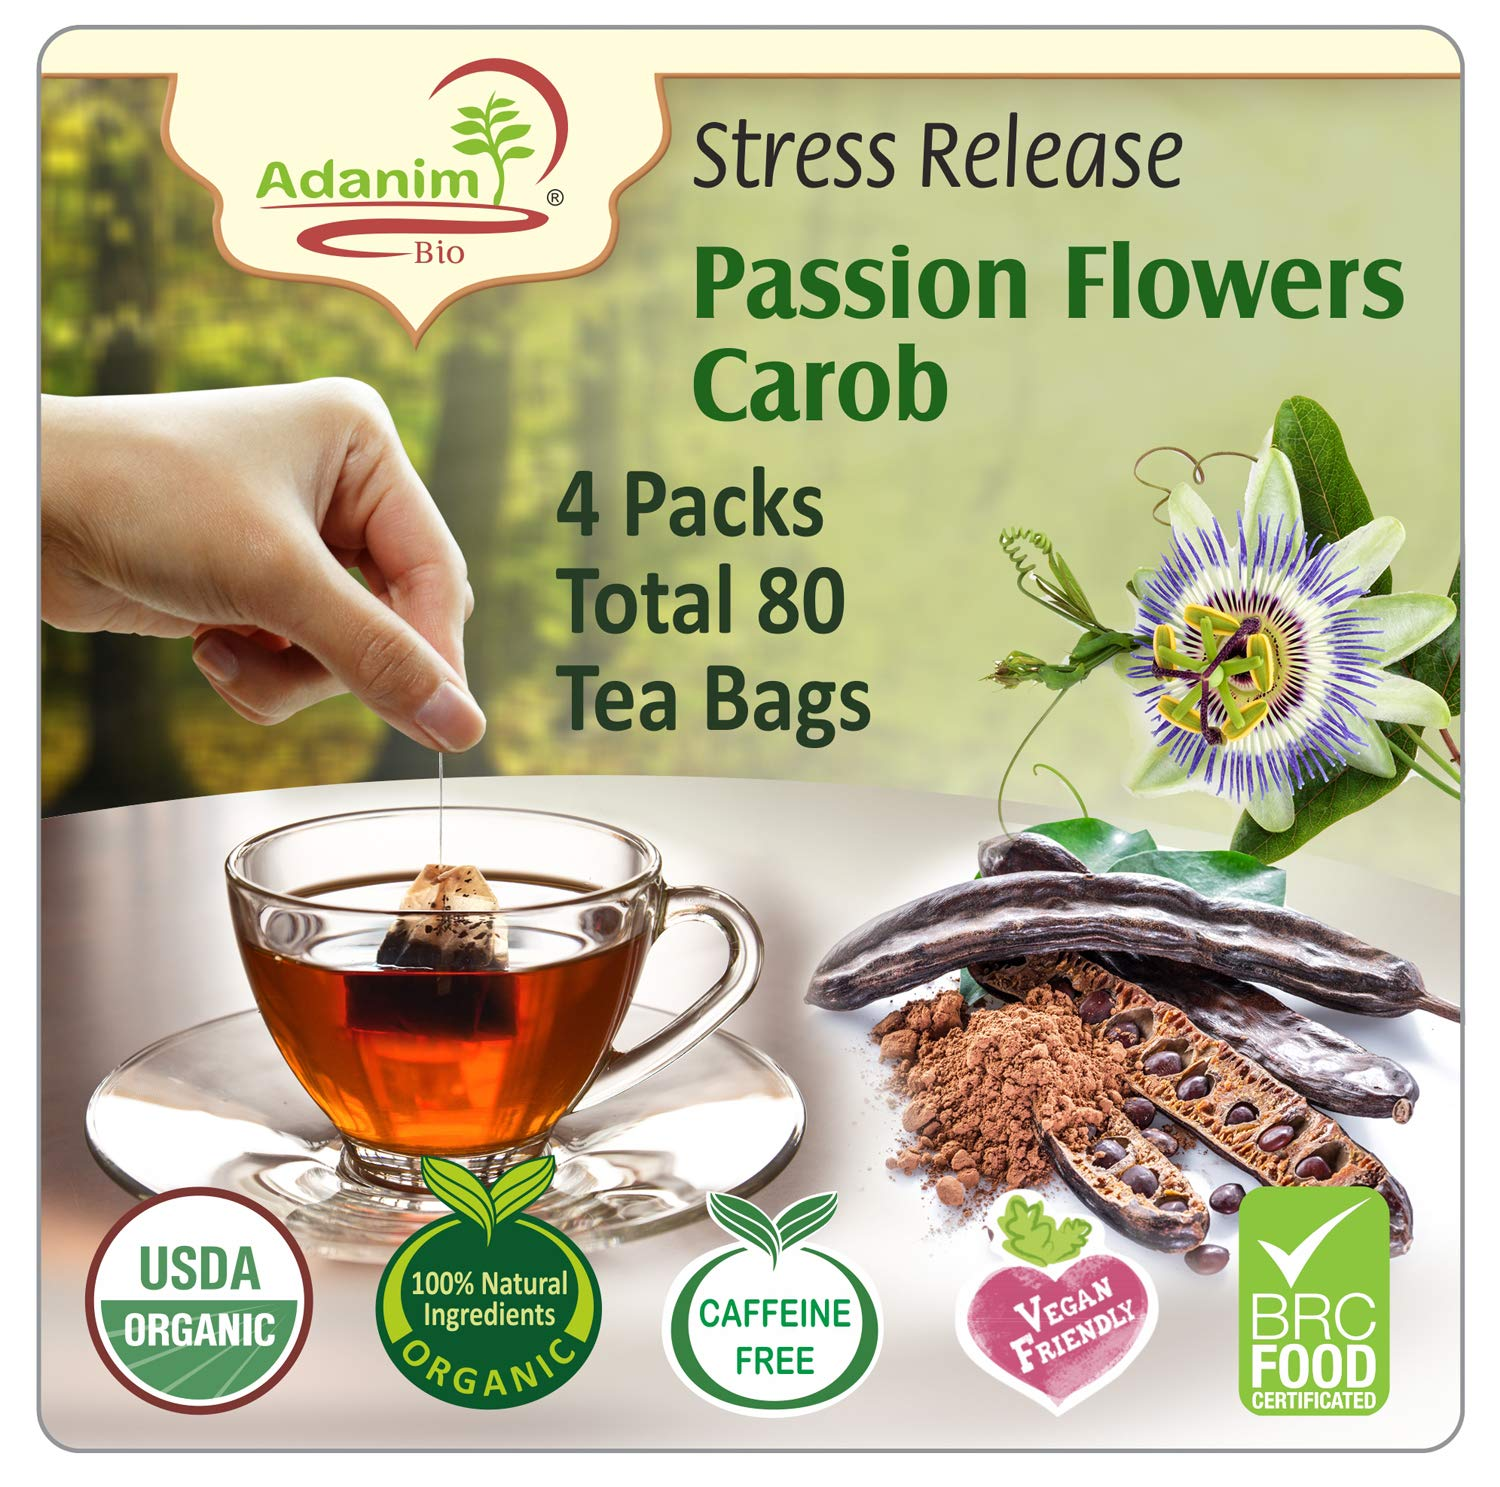 Adanim Bio Organic Passion Flower Tea Bags (Pack of 4) Stress Relief, Anxiety Release, Calming Blend - Passionflower Herbal Tea for Sleep